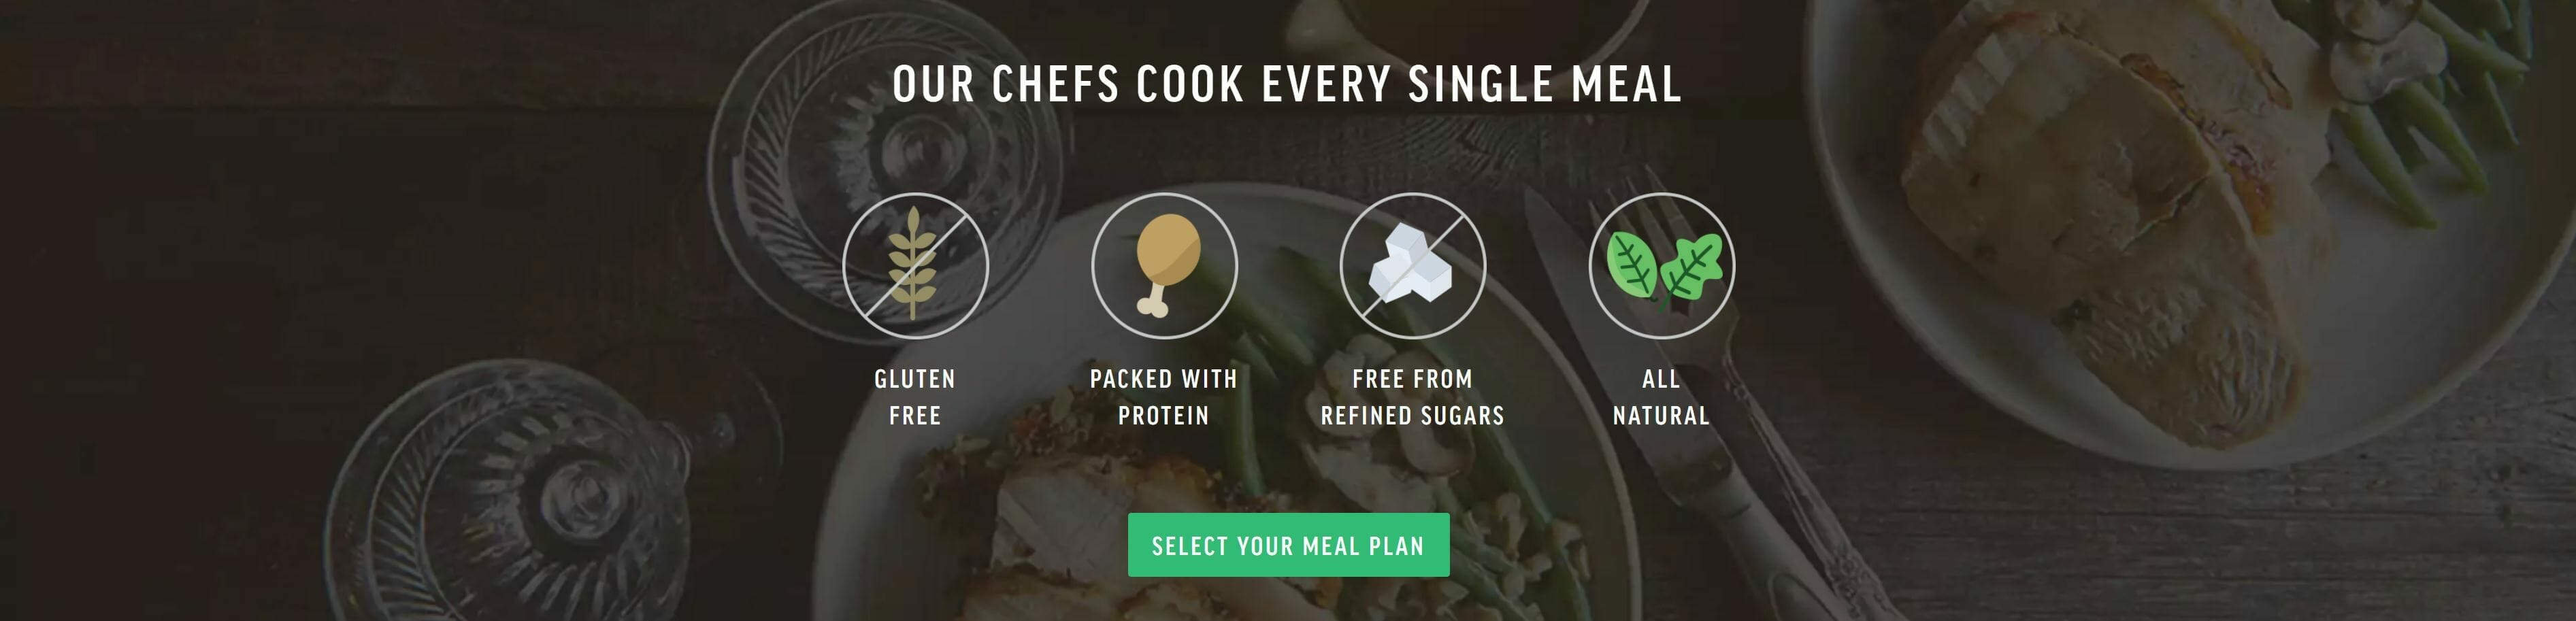 All meals at Freshly are gluten-free